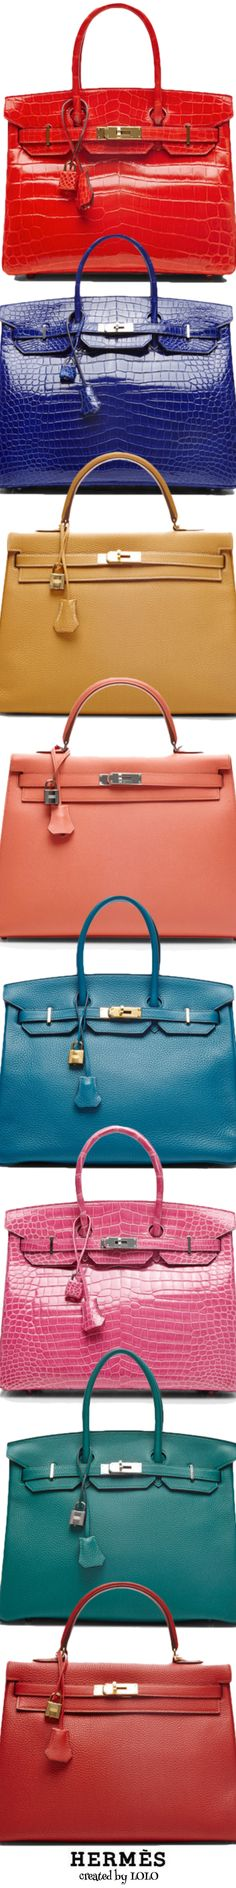 Vintage Hermès via Moda Operandi, yup this is my dream bag..my sell my soul to Satan bag.. my white whale, the bag to end all purse collections. #motherfuckinghermes